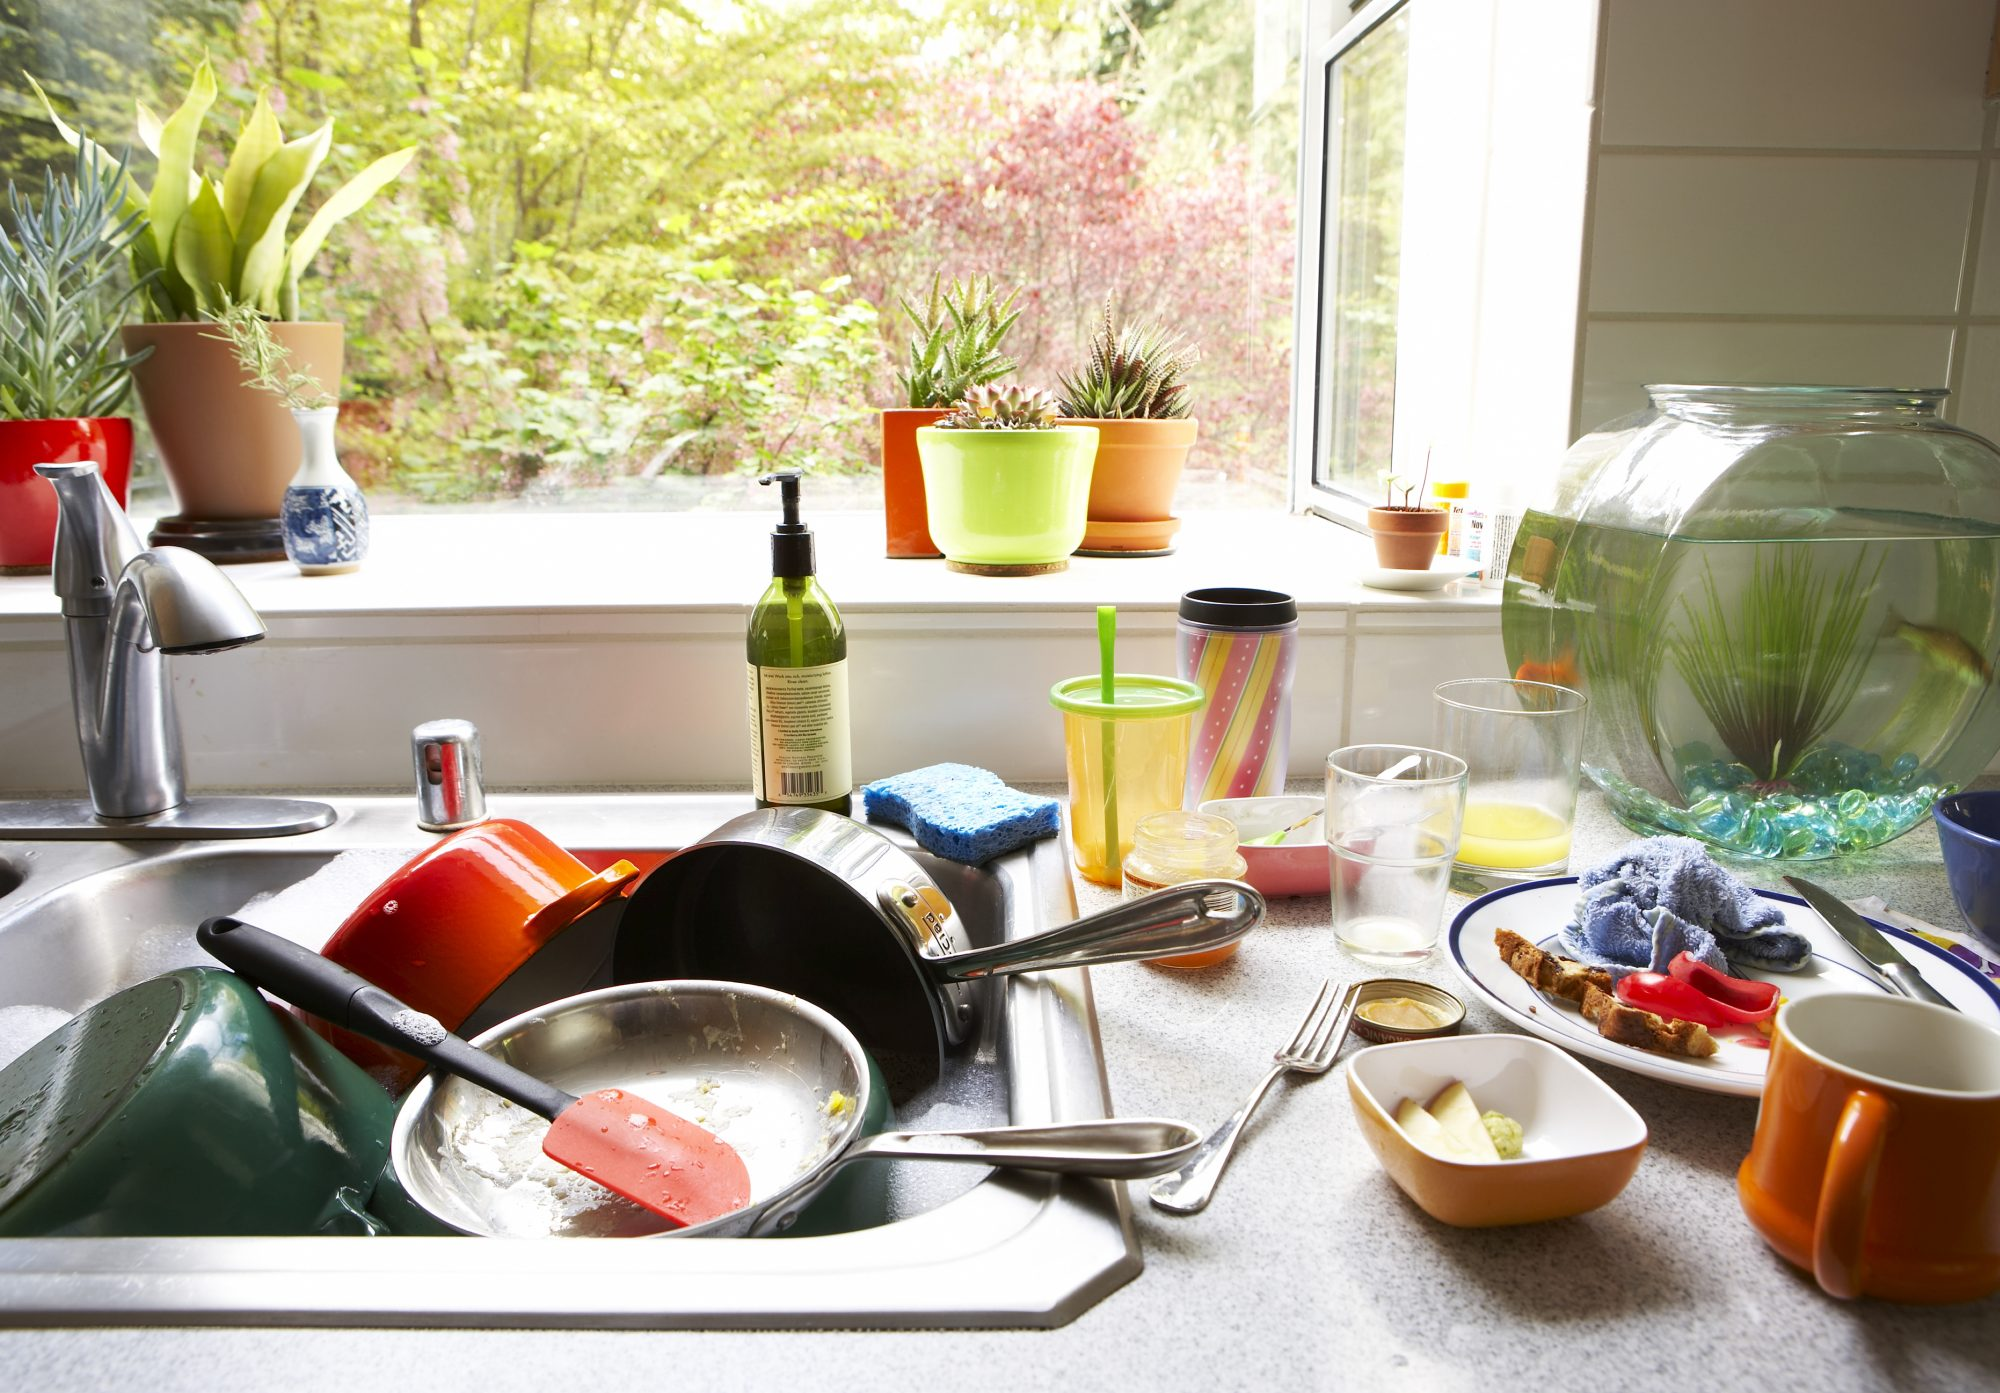 How Not to Have Your Kitchen Be a Hot Mess